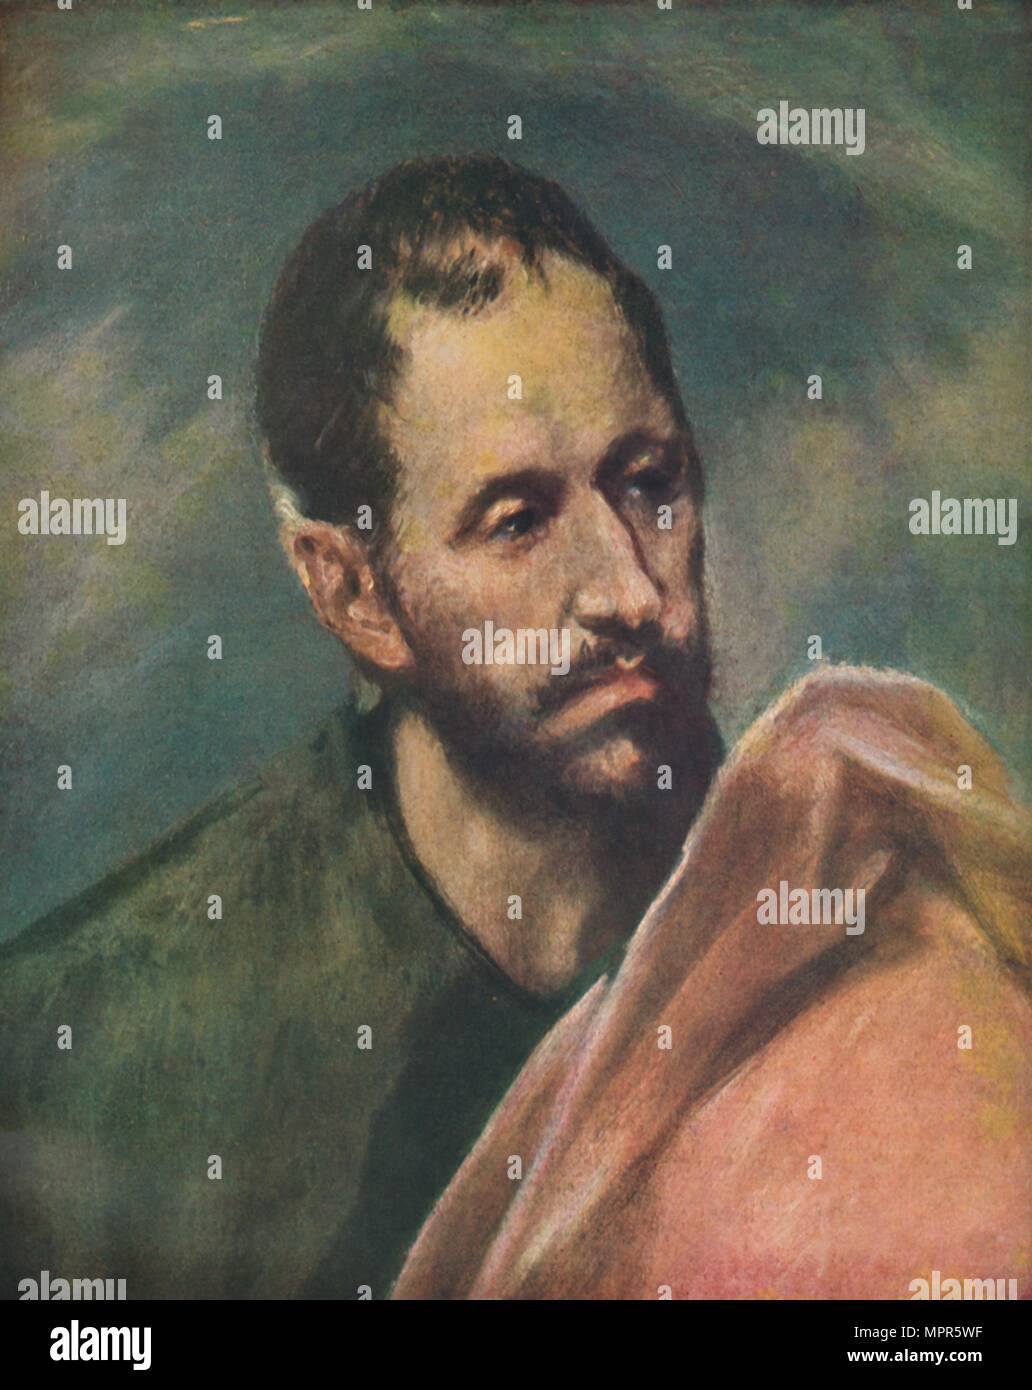 'Als Apostel Jacobus Minor', (Saint James the Younger), c1600, (1938). Artist: El Greco. - Stock Image